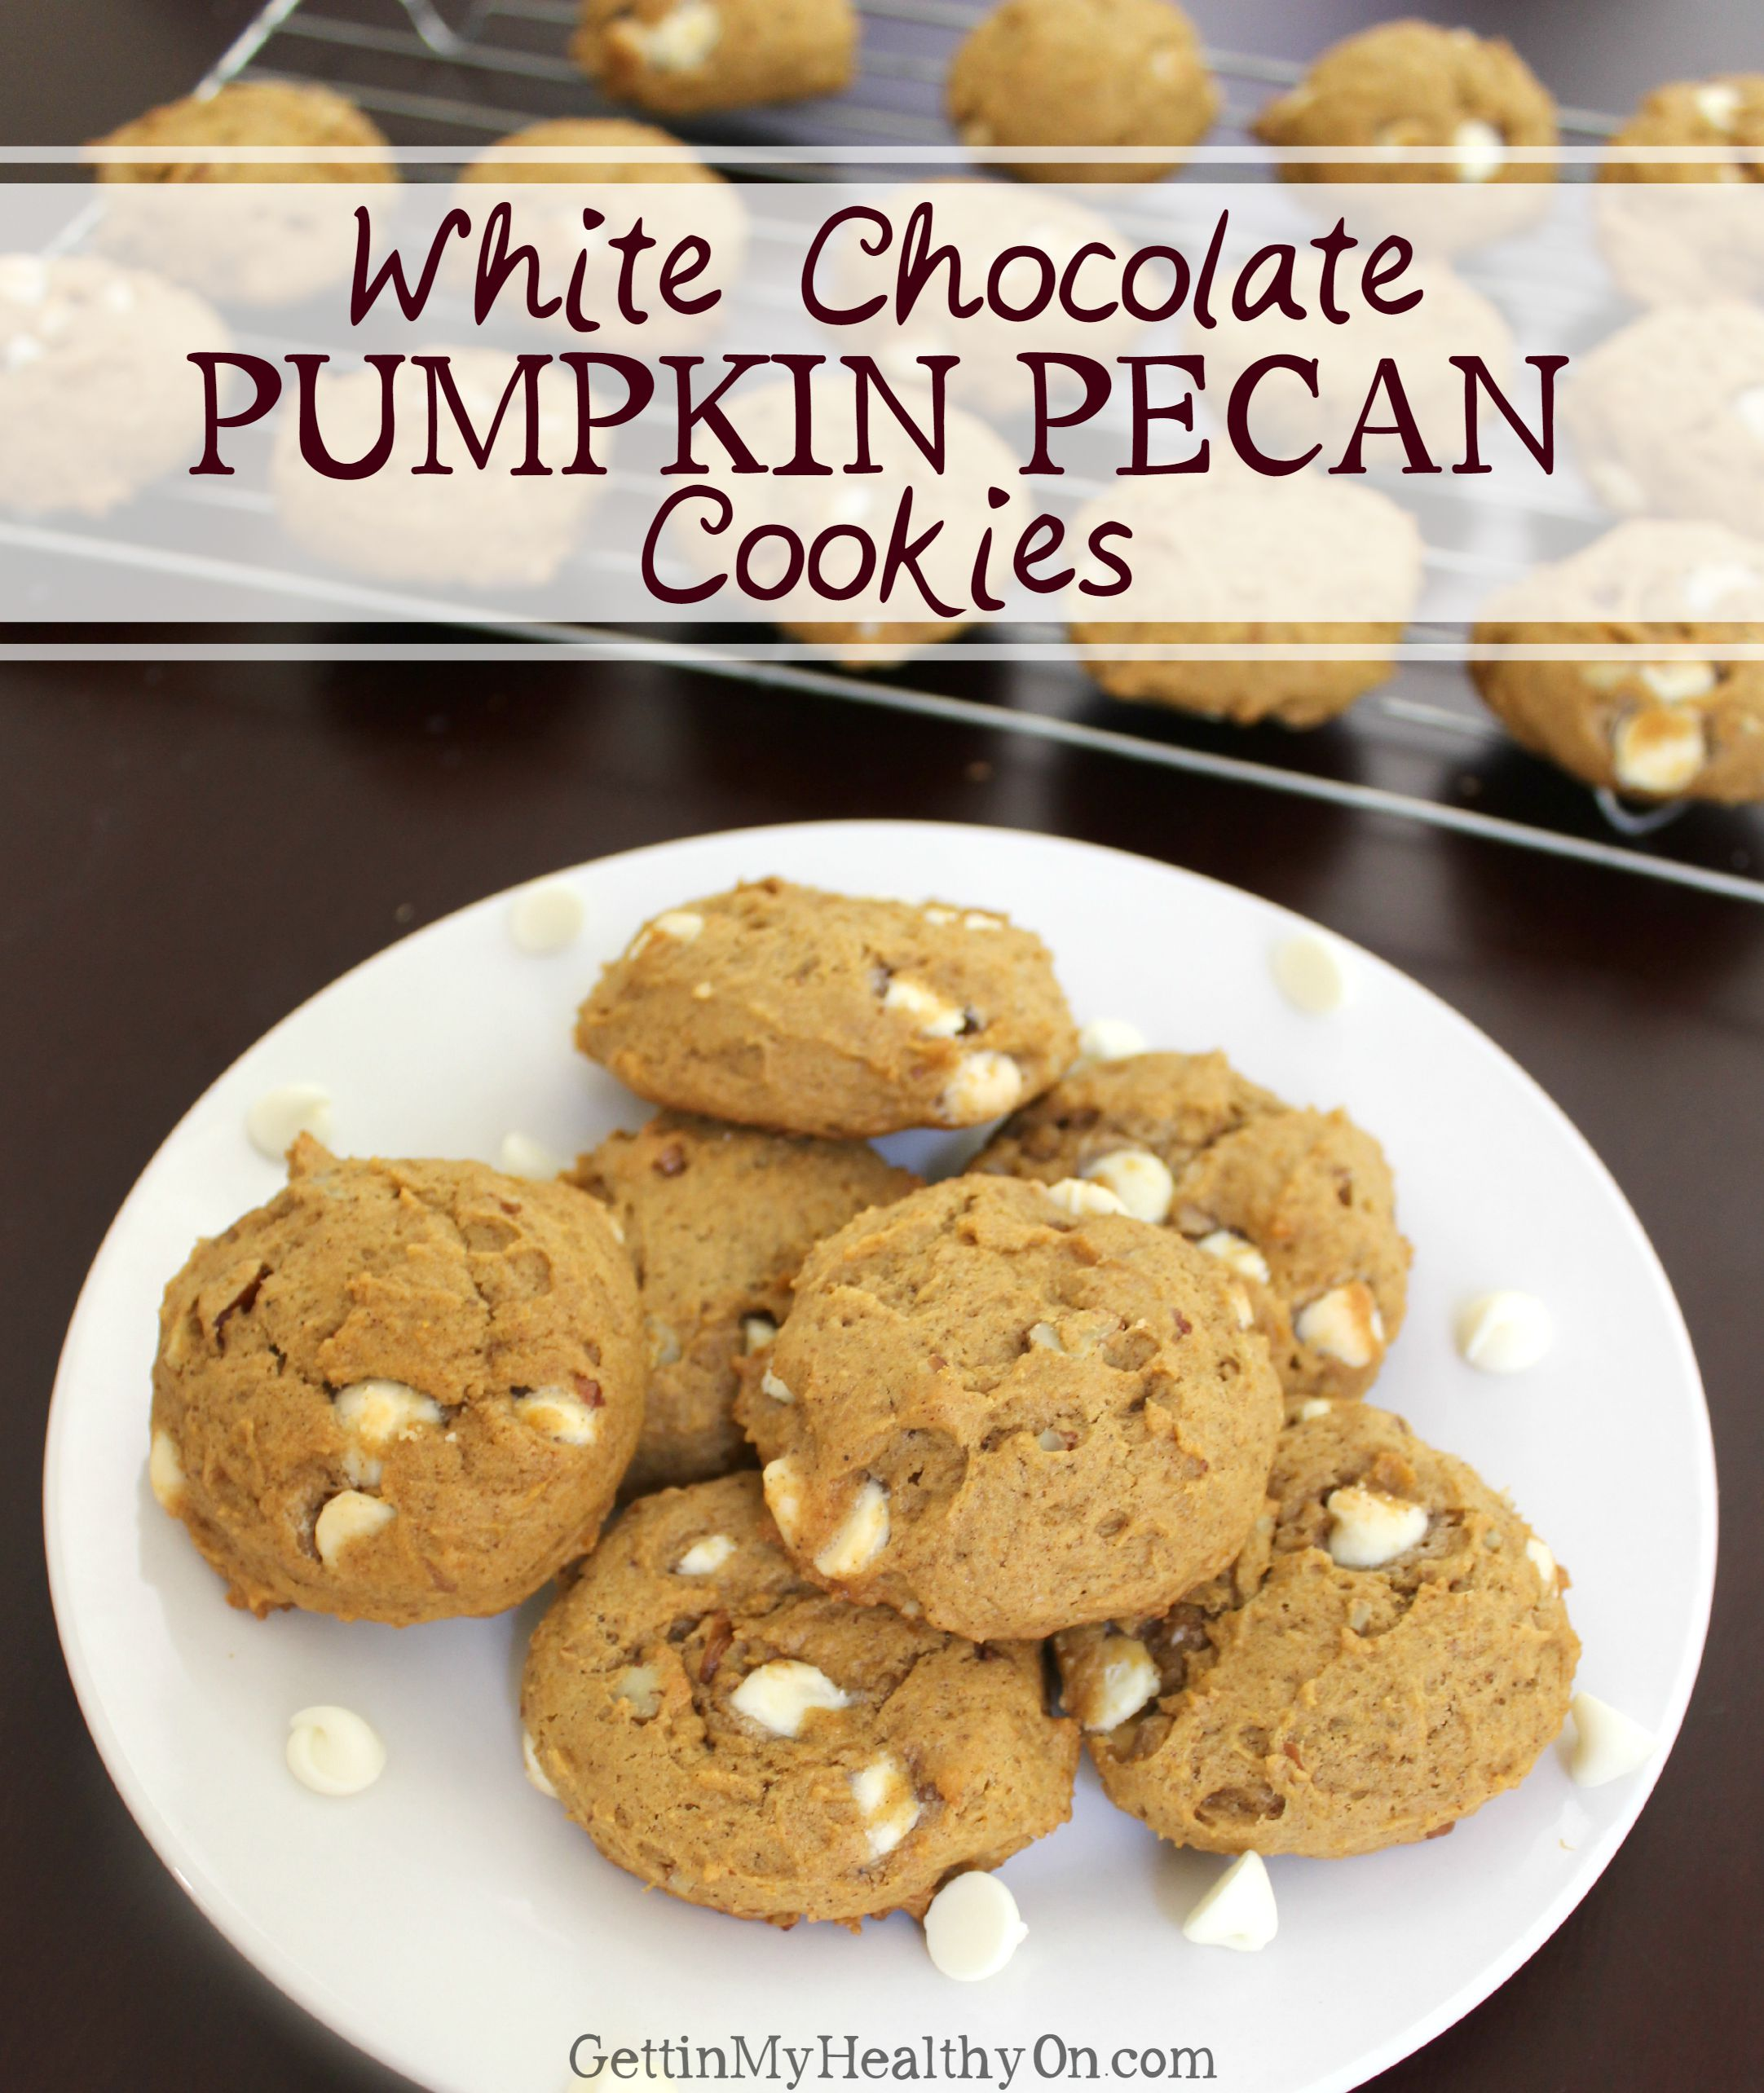 White Chocolate Pumpkin Pecan Cookies